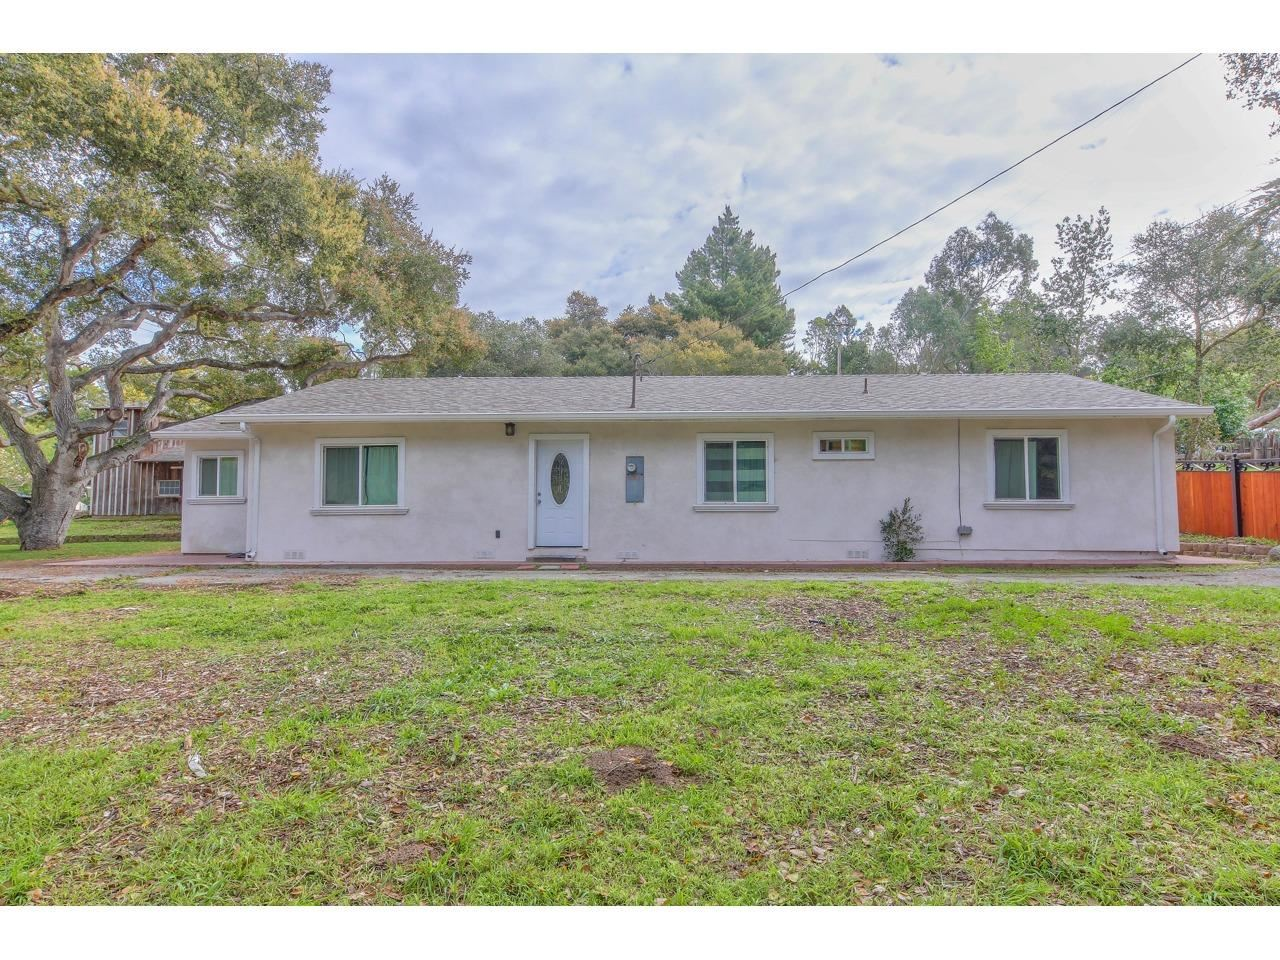 1363 San Miguel Canyon RD 2 #2, Watsonville, CA 95076 - #: ML81787477